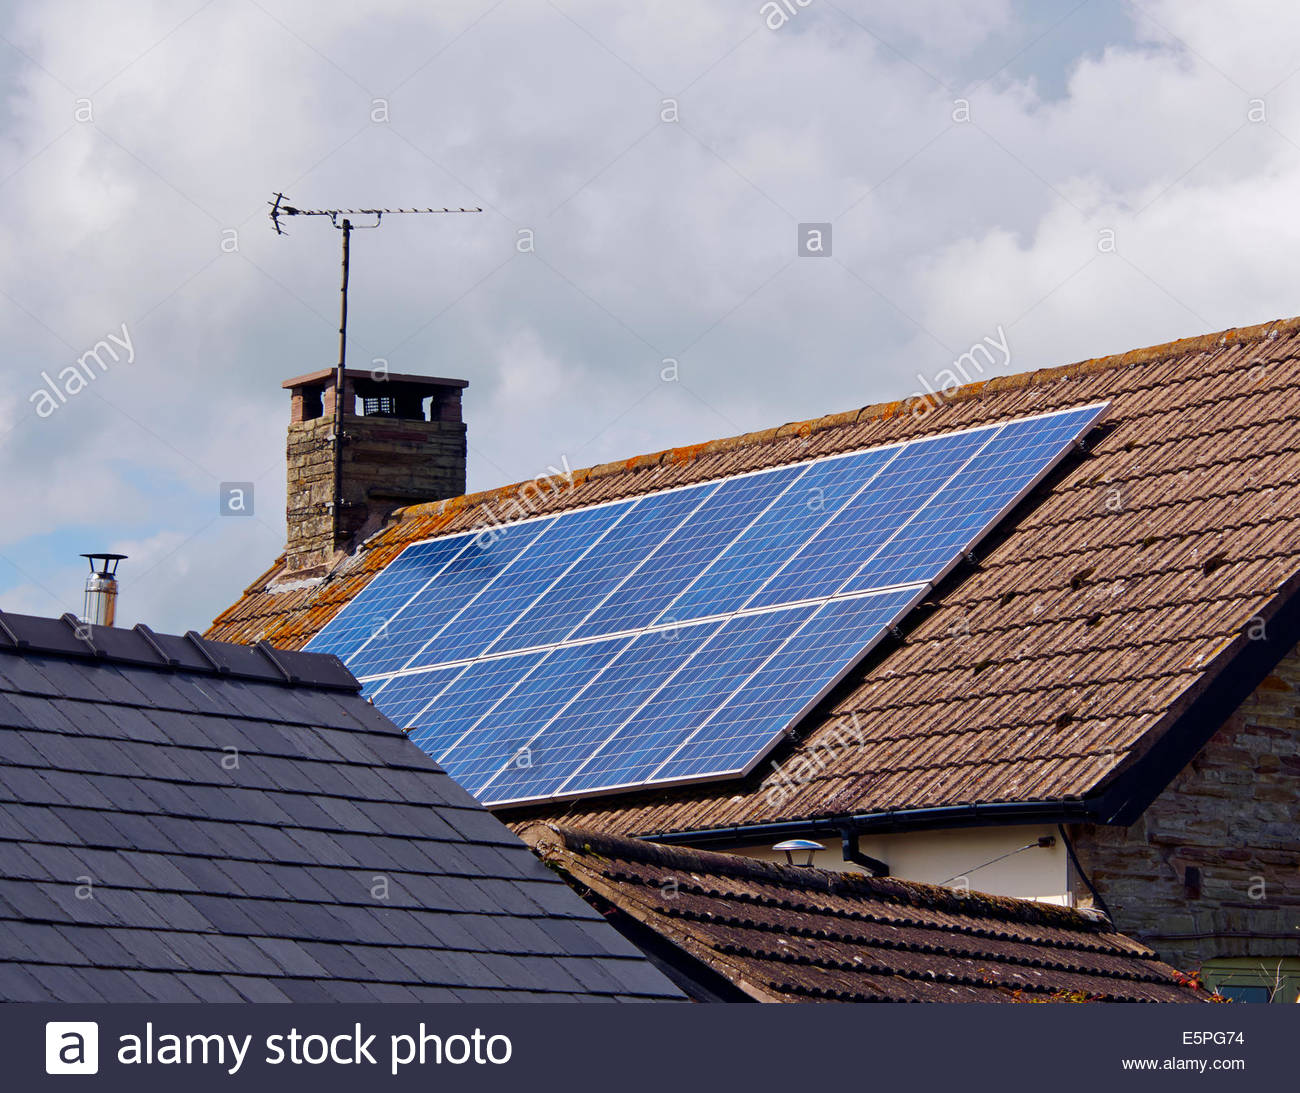 solar energy panels on the roof of a residential building to generate eco friendly electricity - Stock Image